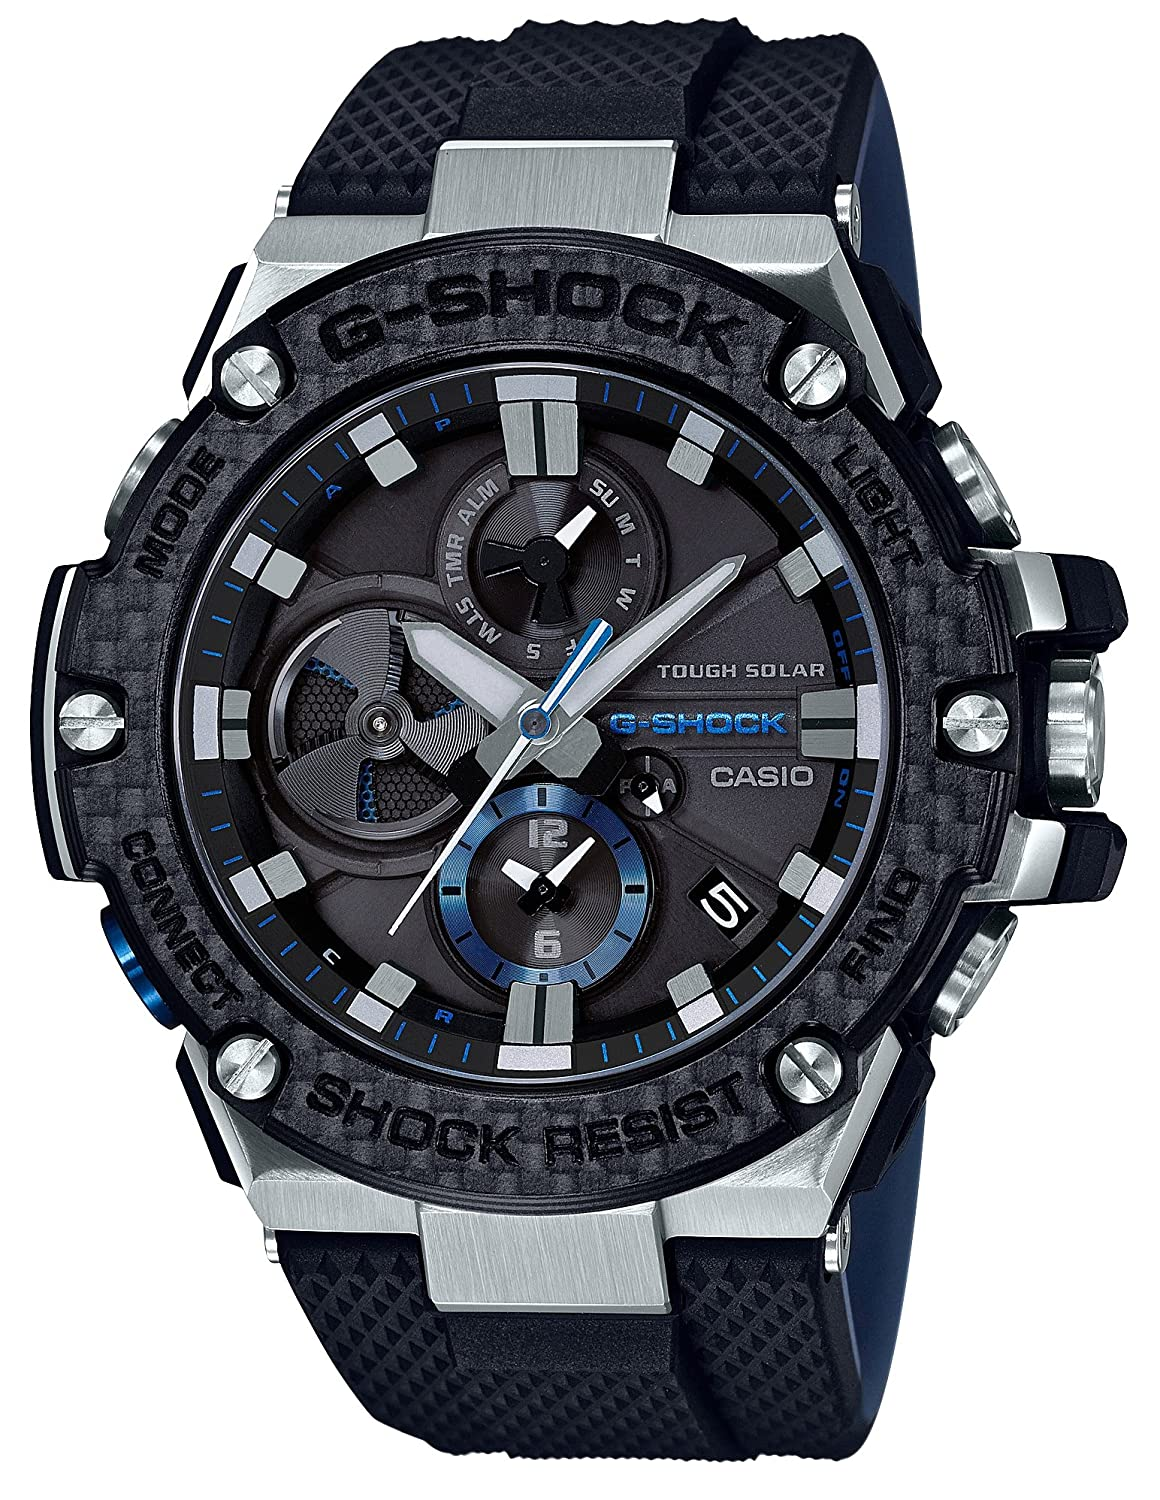 Amazon.com: CASIO G-SHOCK G-STEEL GST-B100XA-1AJF MENS JAPAN IMPORT: Watches